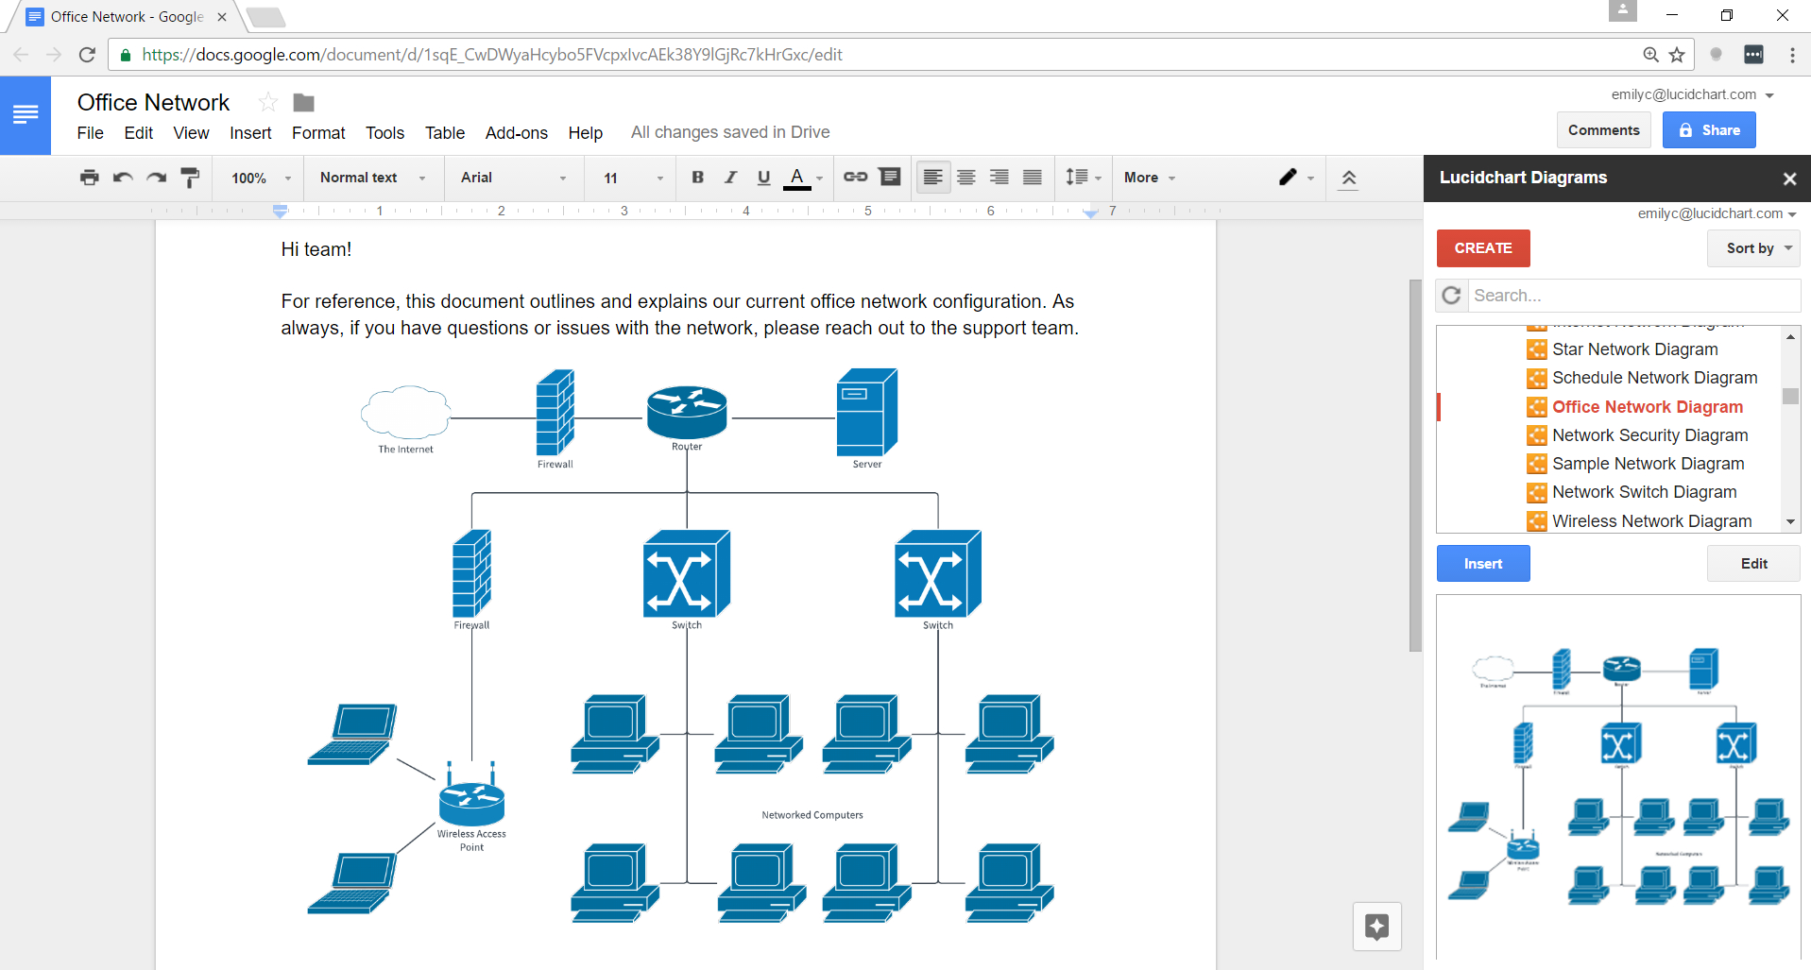 Google Spreadsheet Templates Create With How To Make A Flowchart In Google Docs  Lucidchart